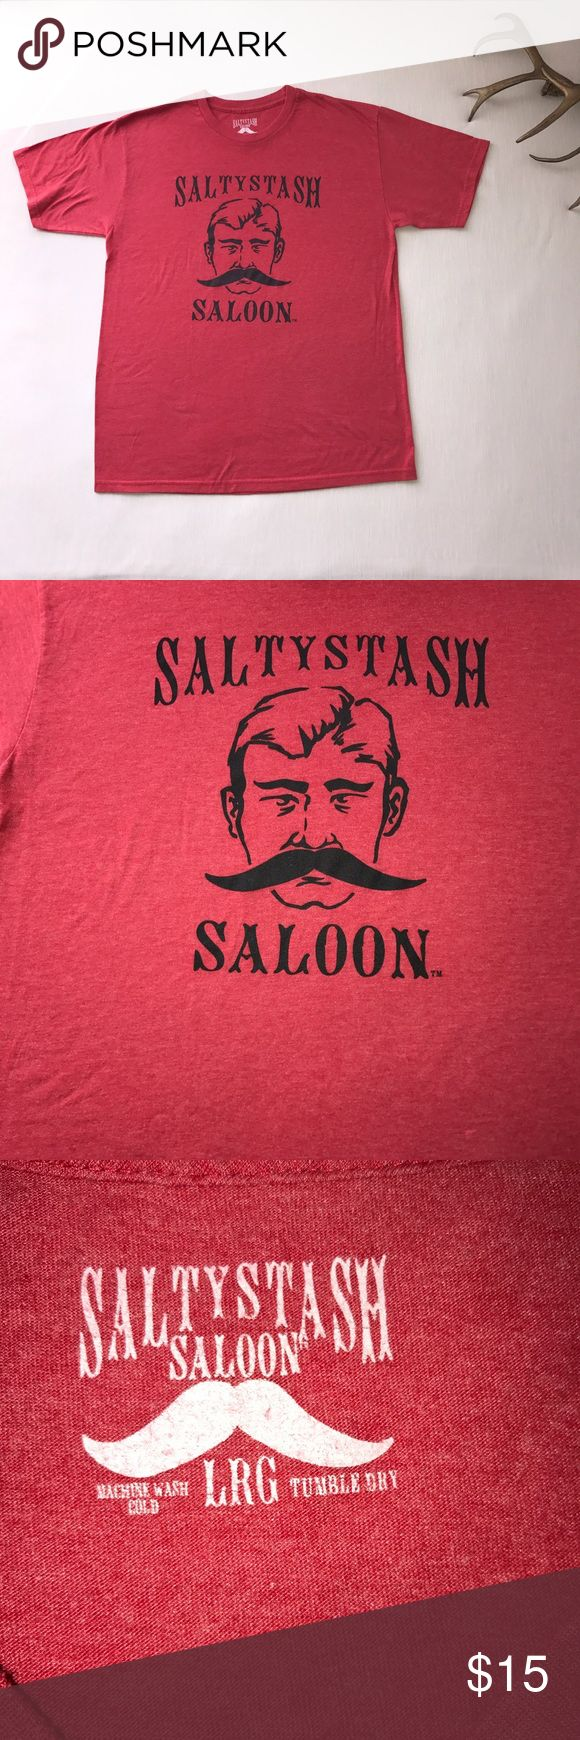 Large Red Men's Shirt Salty Stash Saloon Salty Stash Saloon, mustache man shirt. Size Large, in great condition. 21 inches laid flat armpit to armpit. Shirts Tees - Short Sleeve